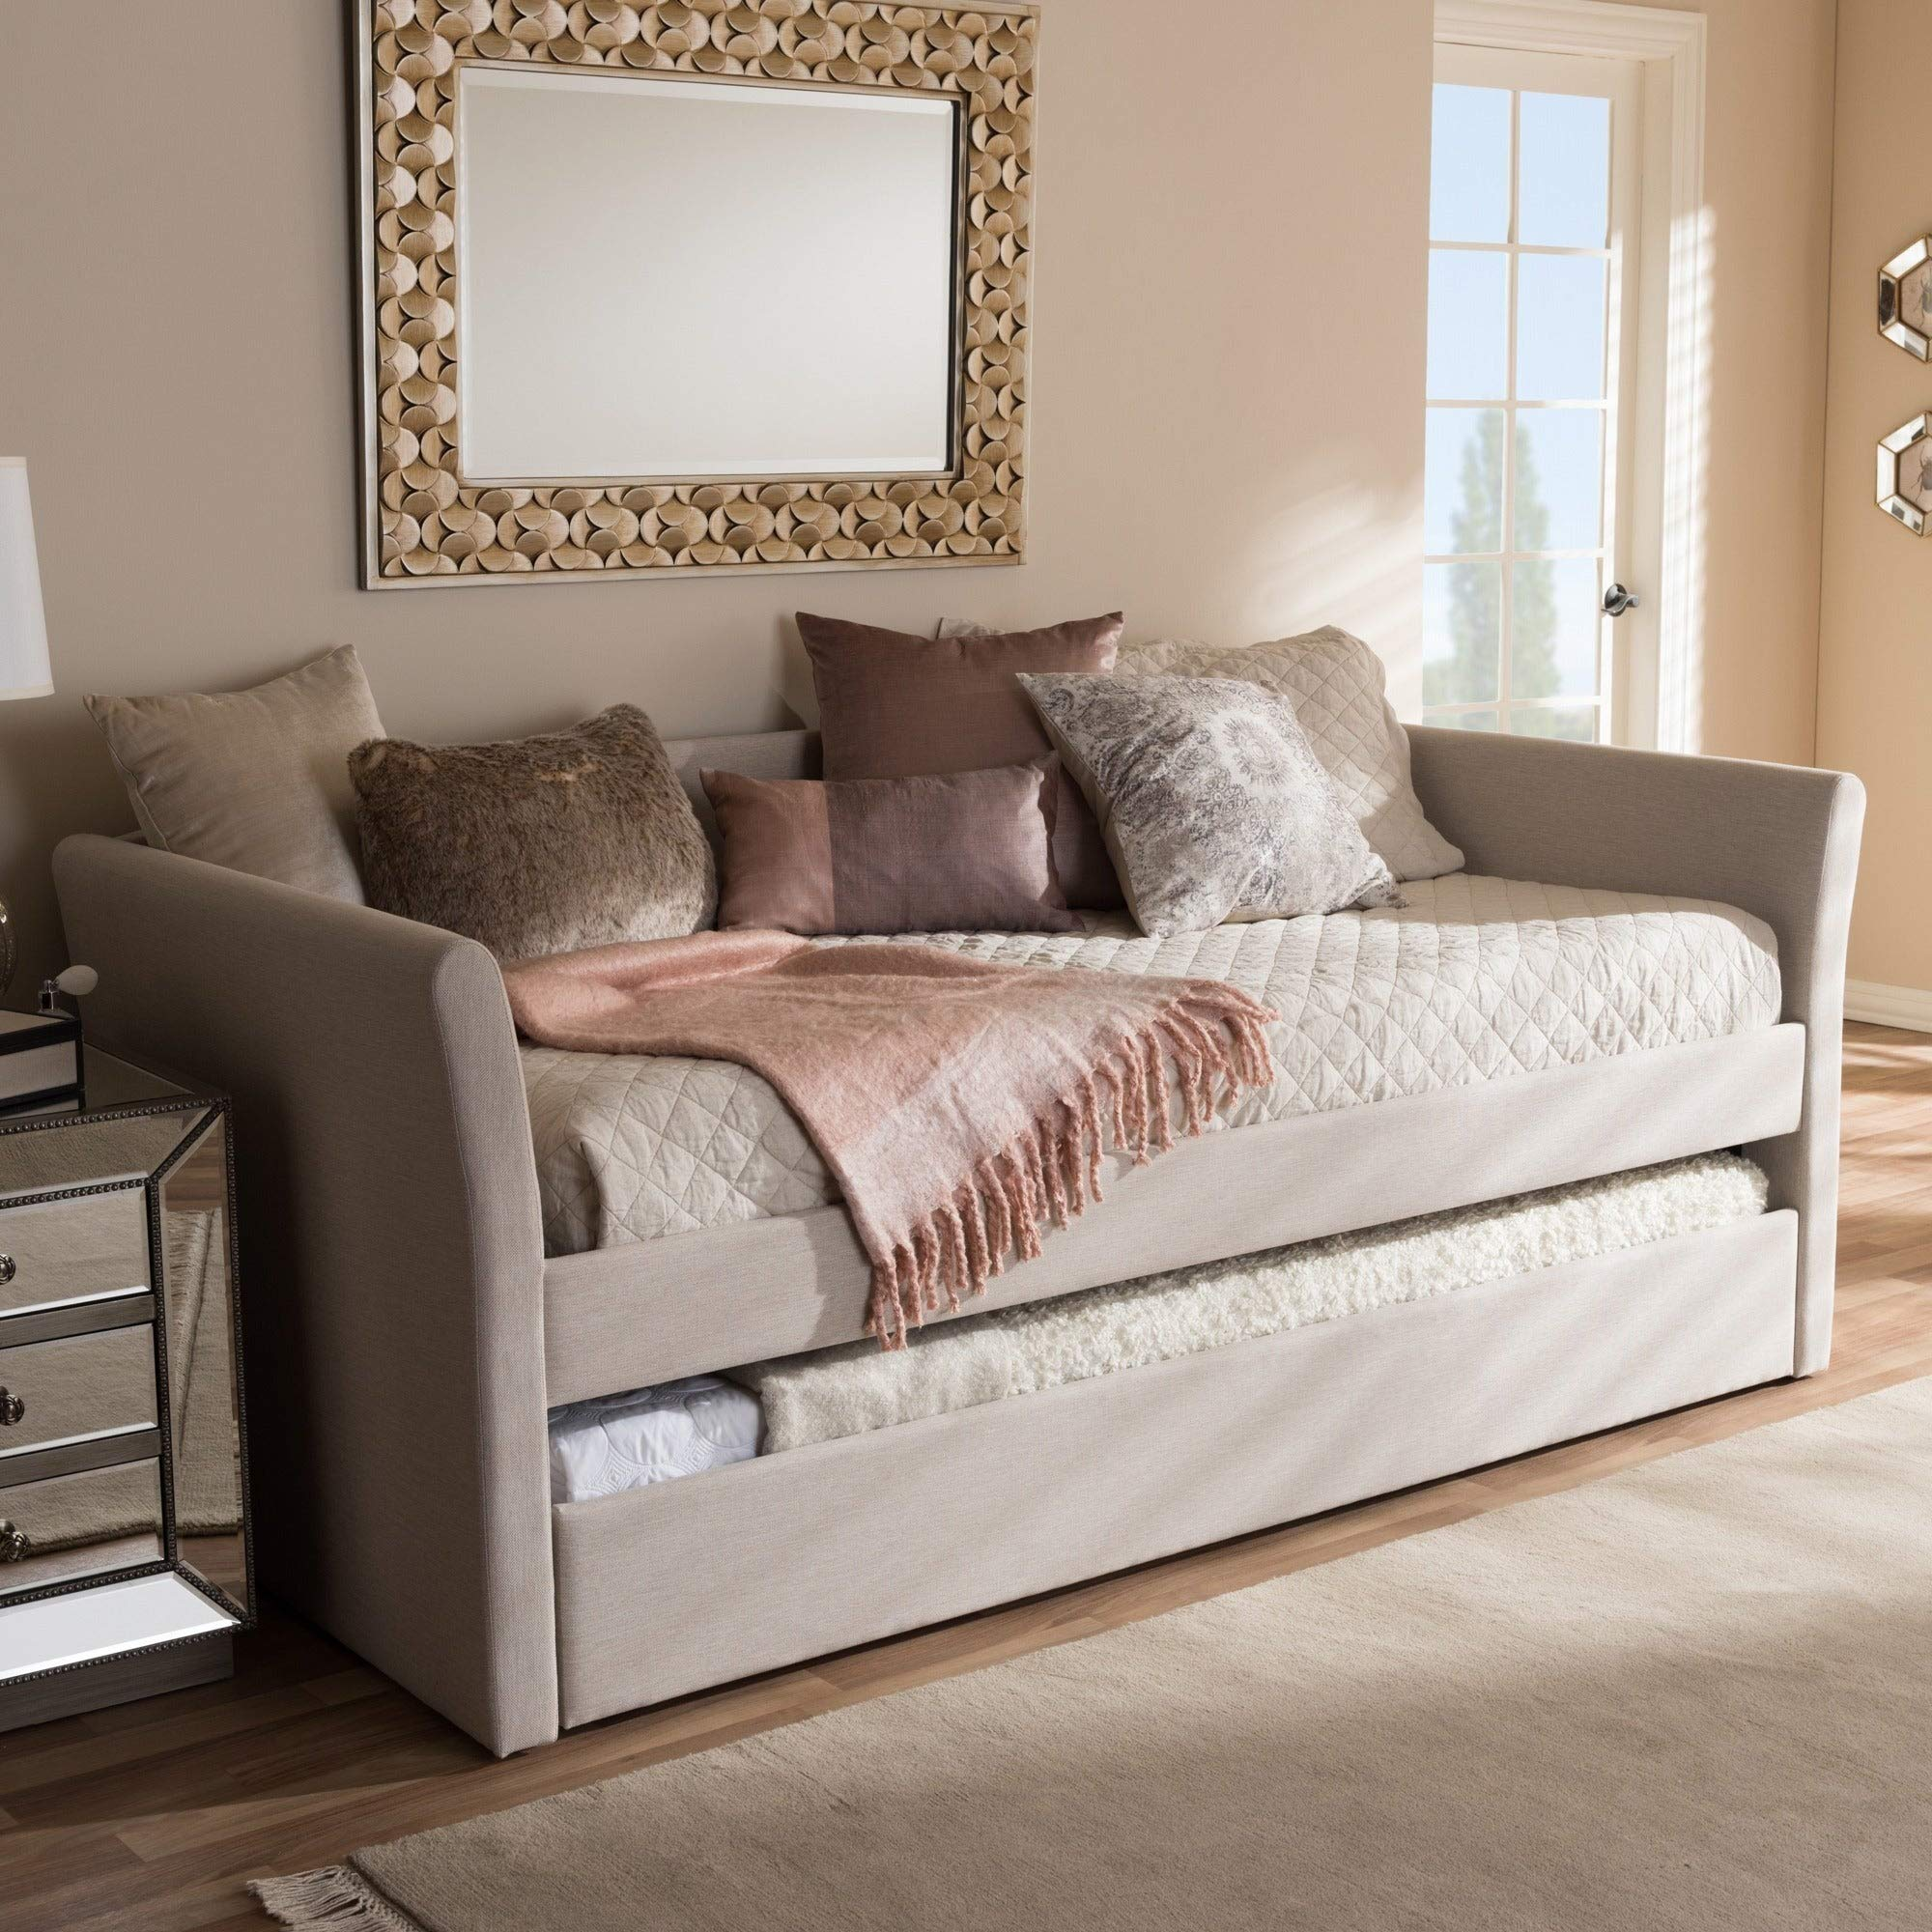 Baxton Studio Kassandra Modern and Contemporary Daybed with Guest Trundle Bed Beige by Baxton Studio